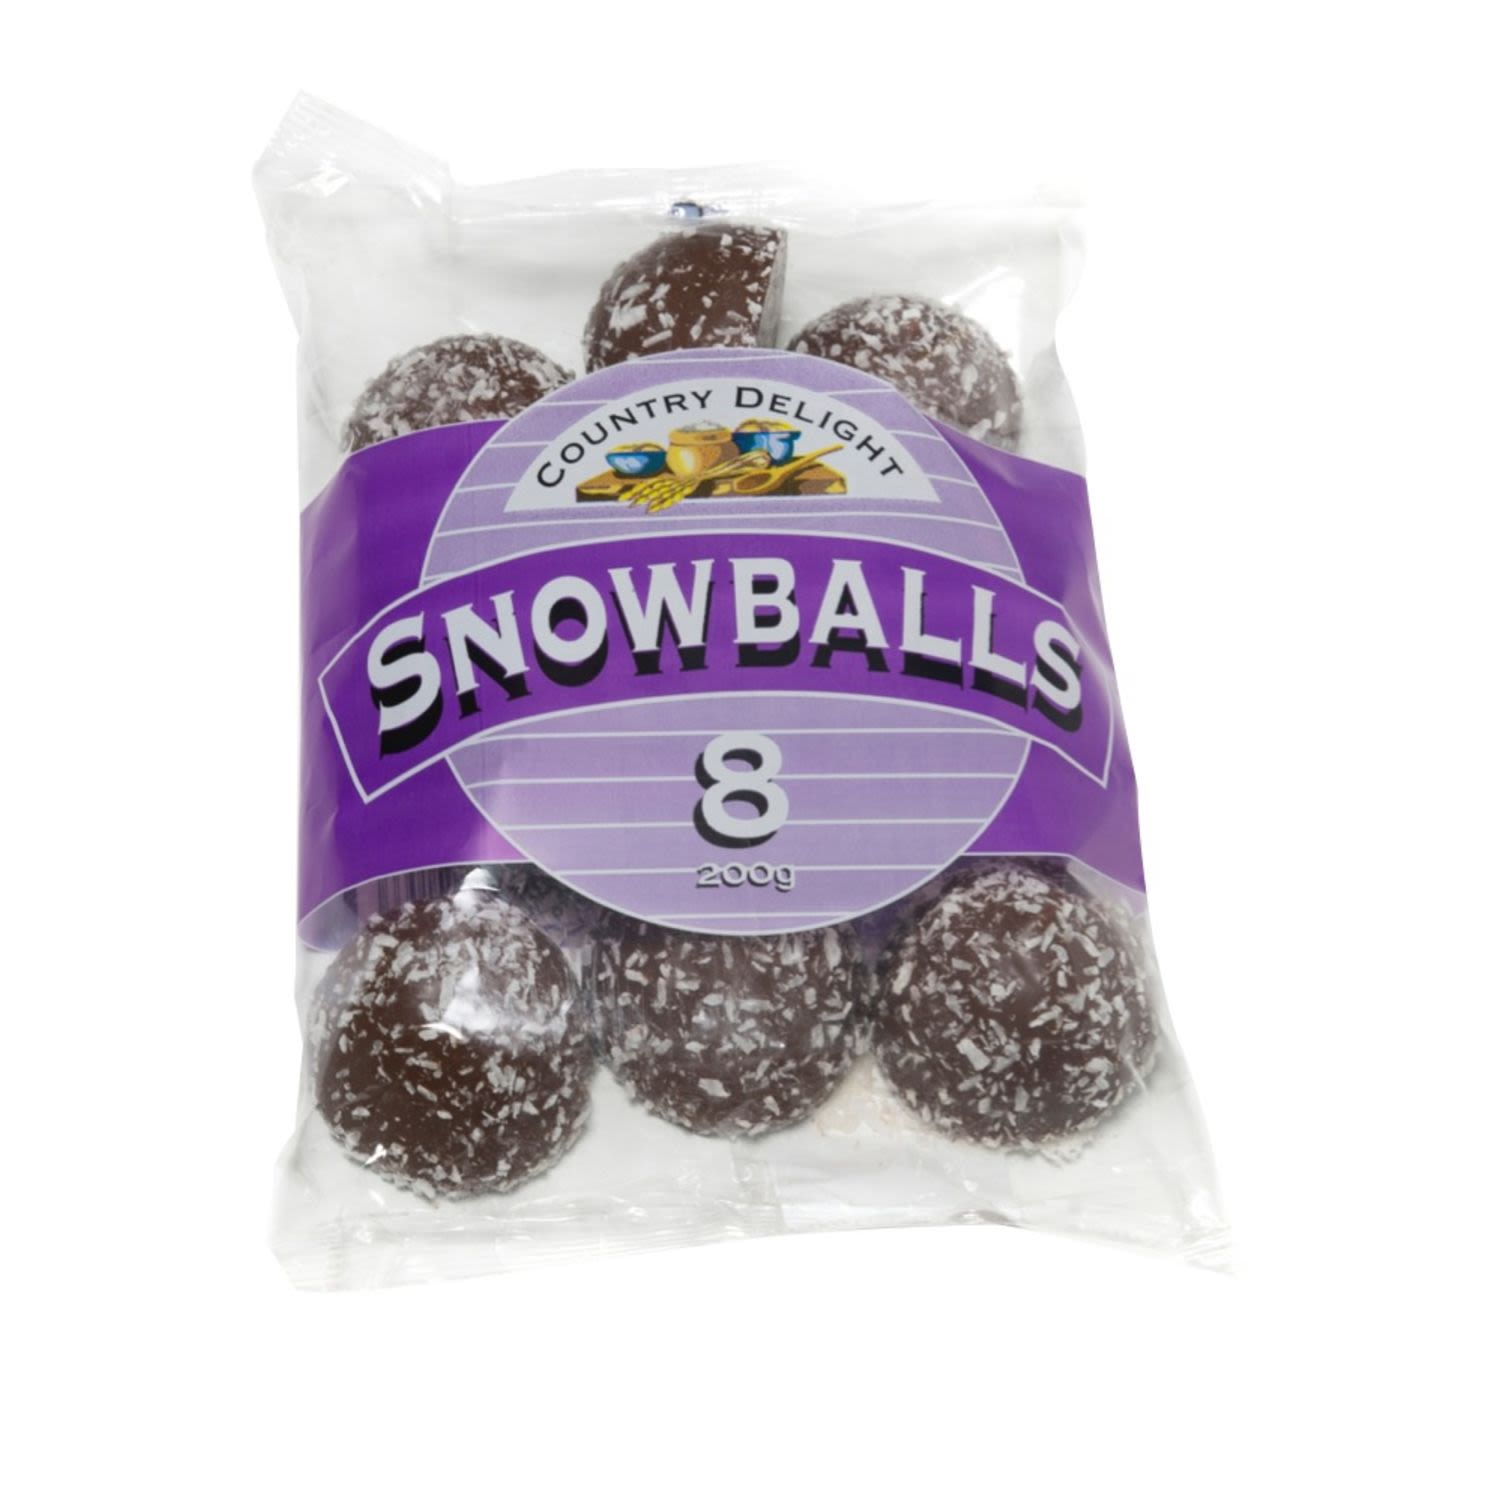 Country Delights Snowballs, 8 Each